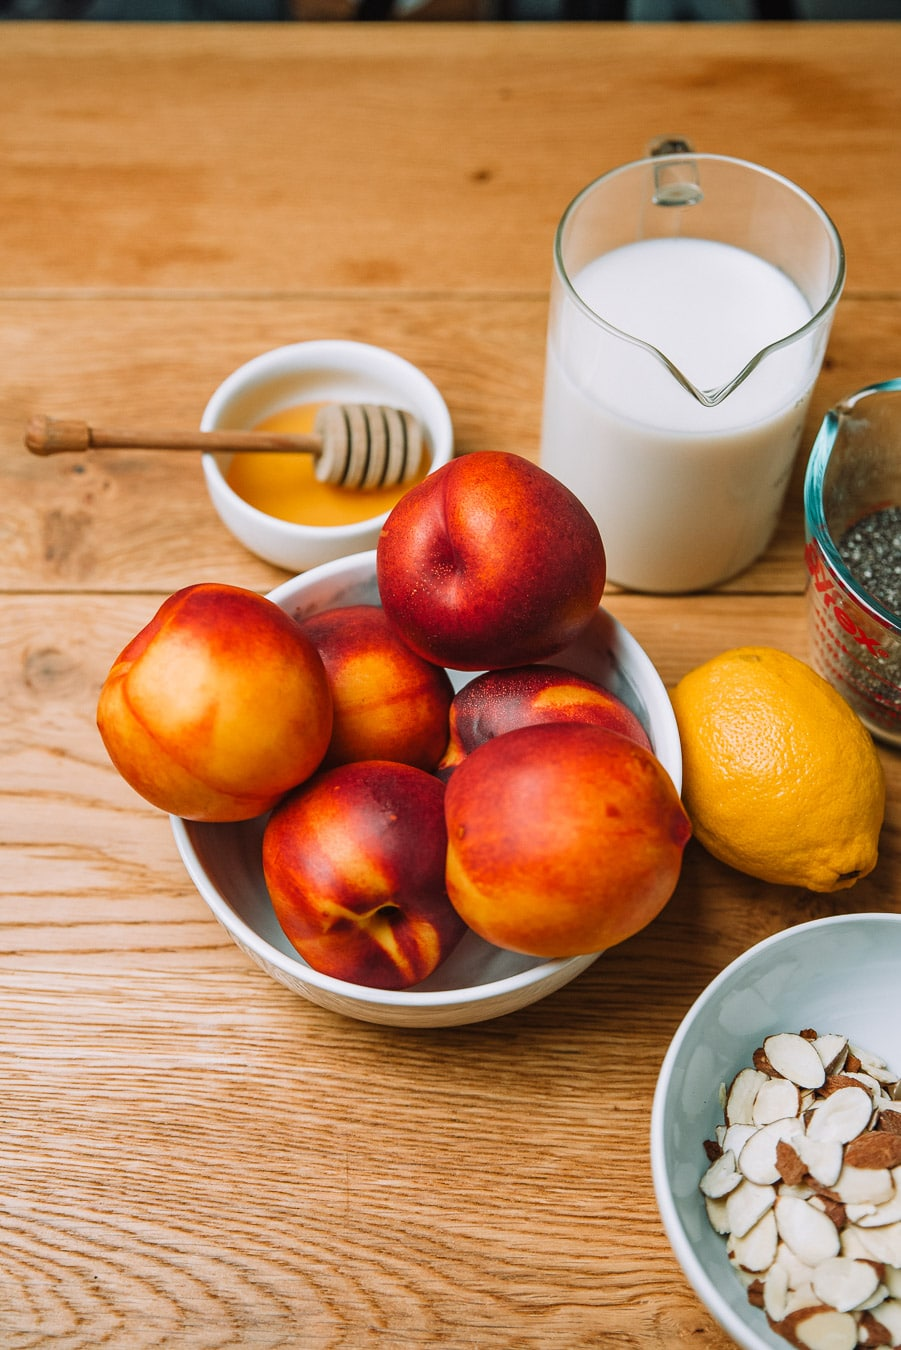 Milk, honey, lemon, almonds, chia seeds, and yellow nectarines in a bowl sitting on a wooden table